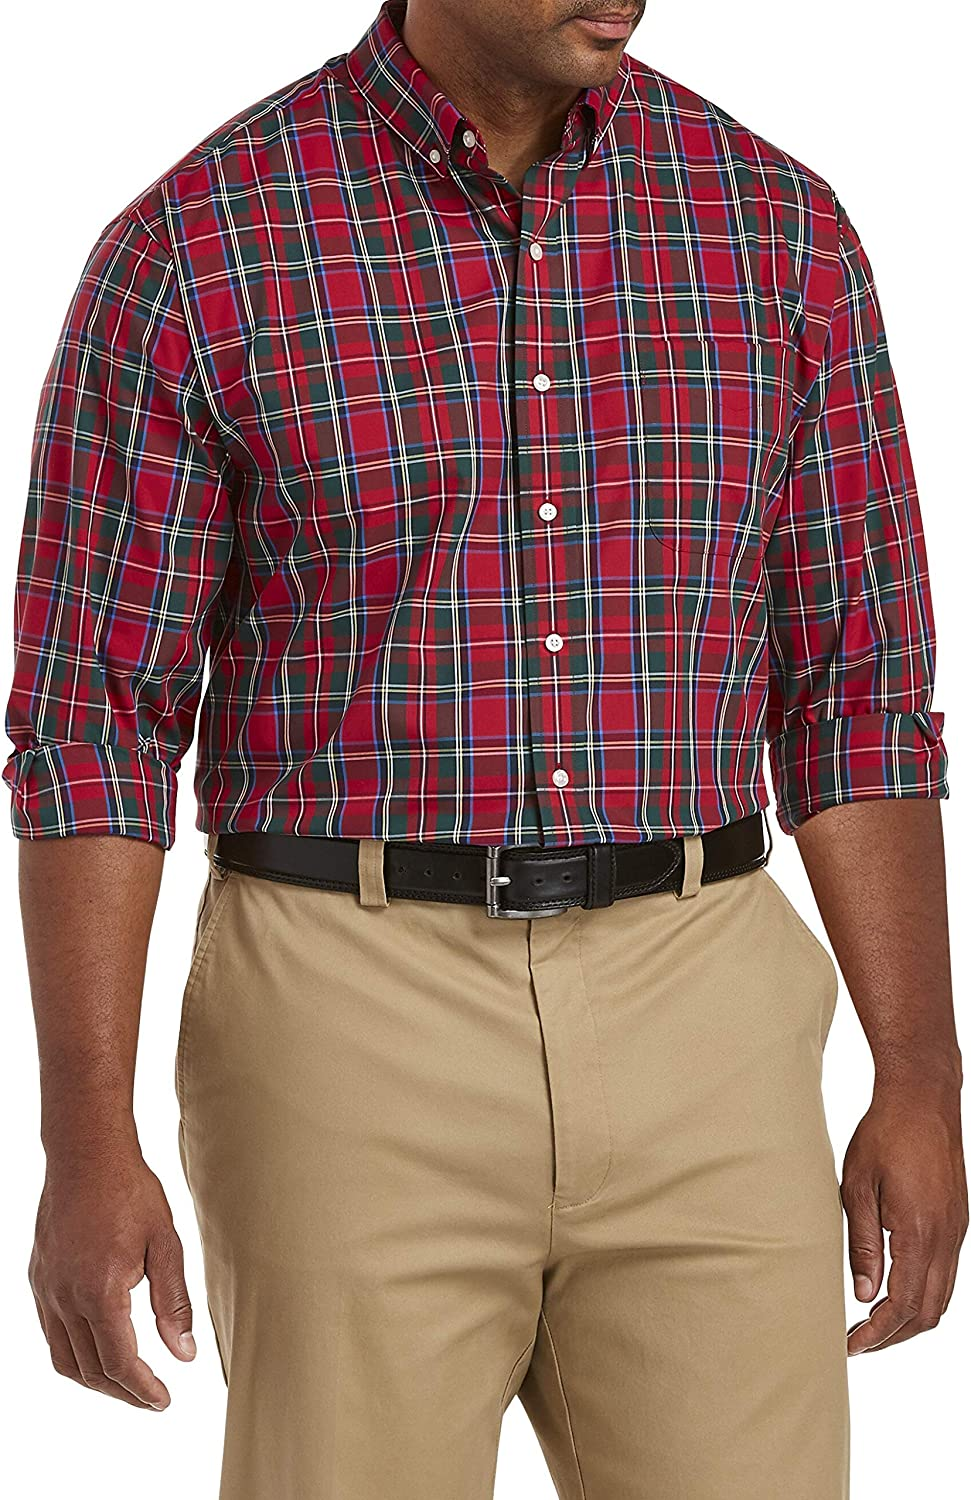 Oak Hill by DXL Big and Tall Large Plaid Jester Holiday Sport Shirt, Jester Red